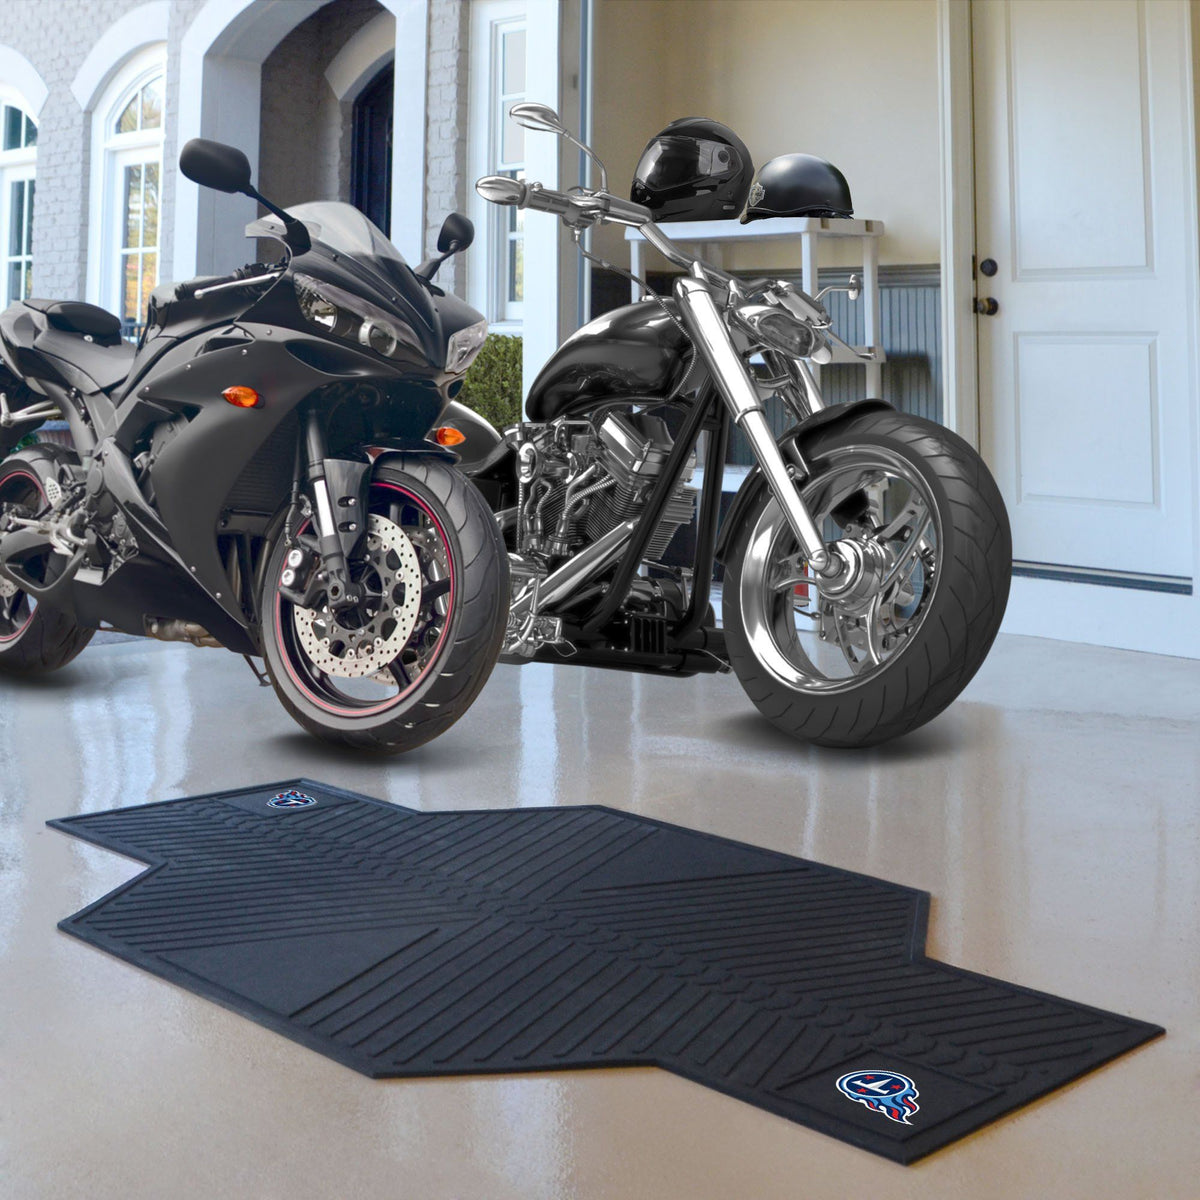 "NFL - Motorcycle Mat, 82.5"" x 42"" NFL Mats, Motorcycle Accessory, Motorcycle Mat, NFL, Auto Fan Mats Tennessee Titans"